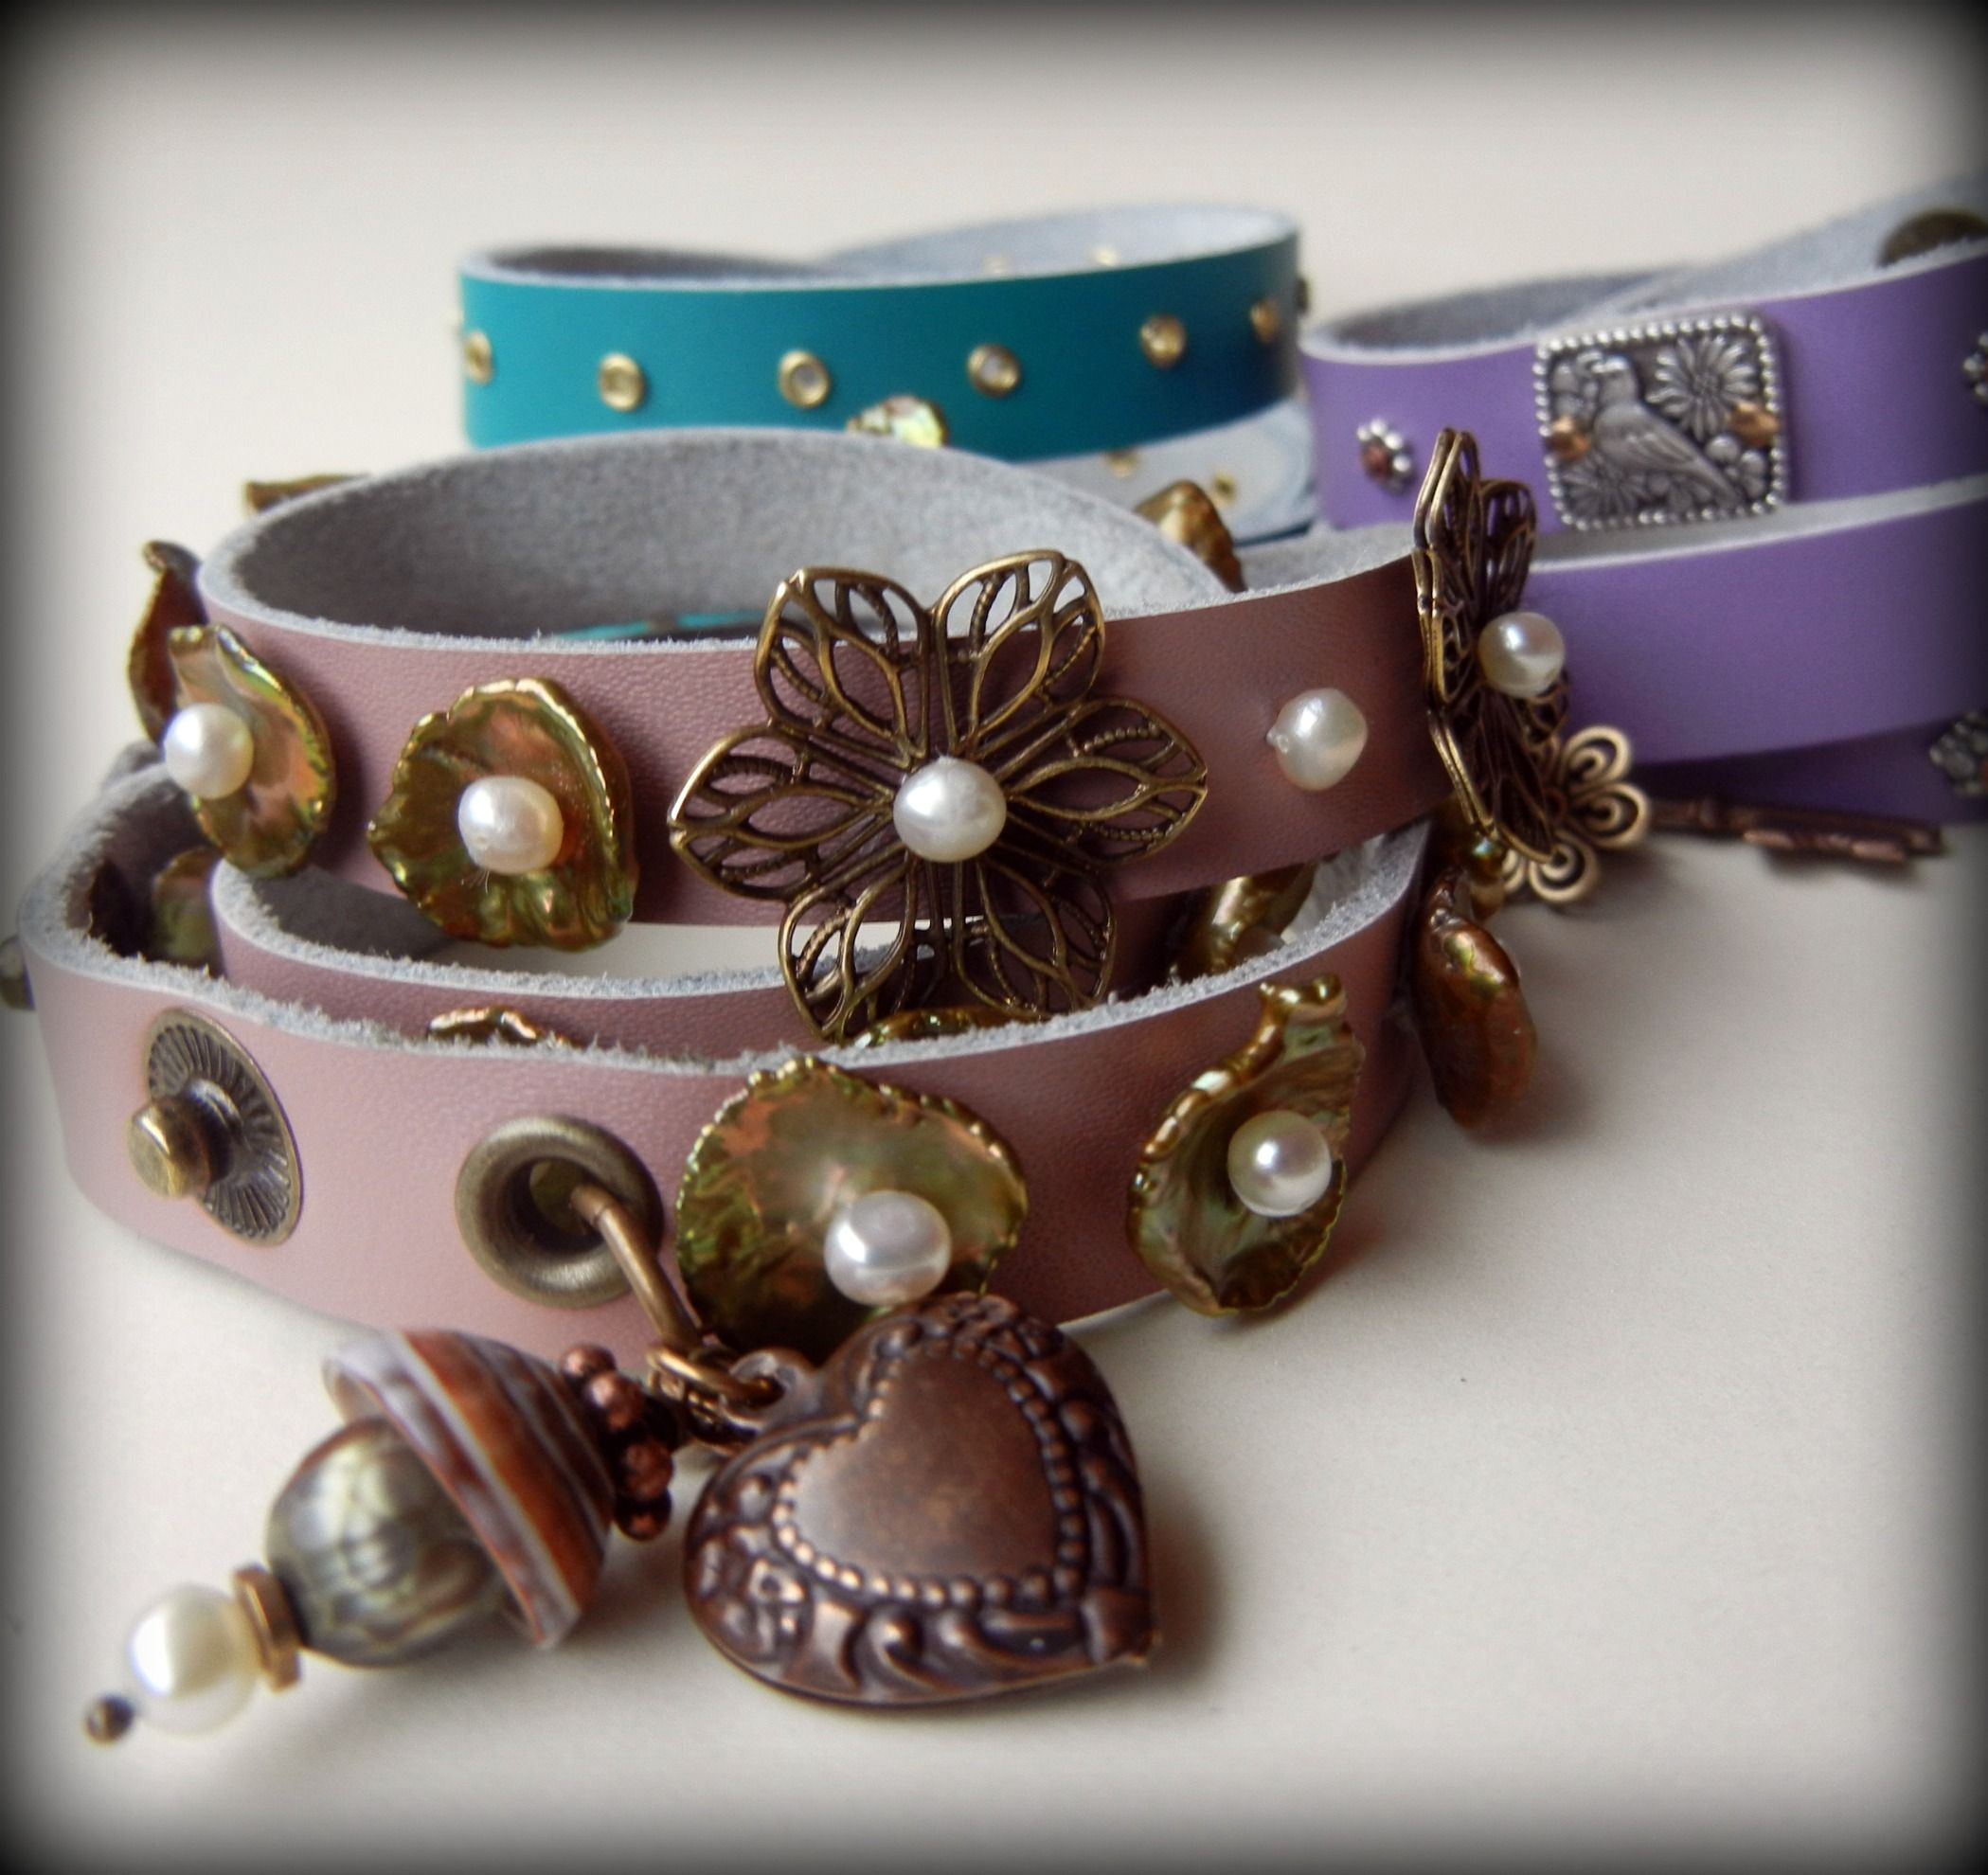 Leather strap wrap bracelets in bright new colors! – Rings and Things